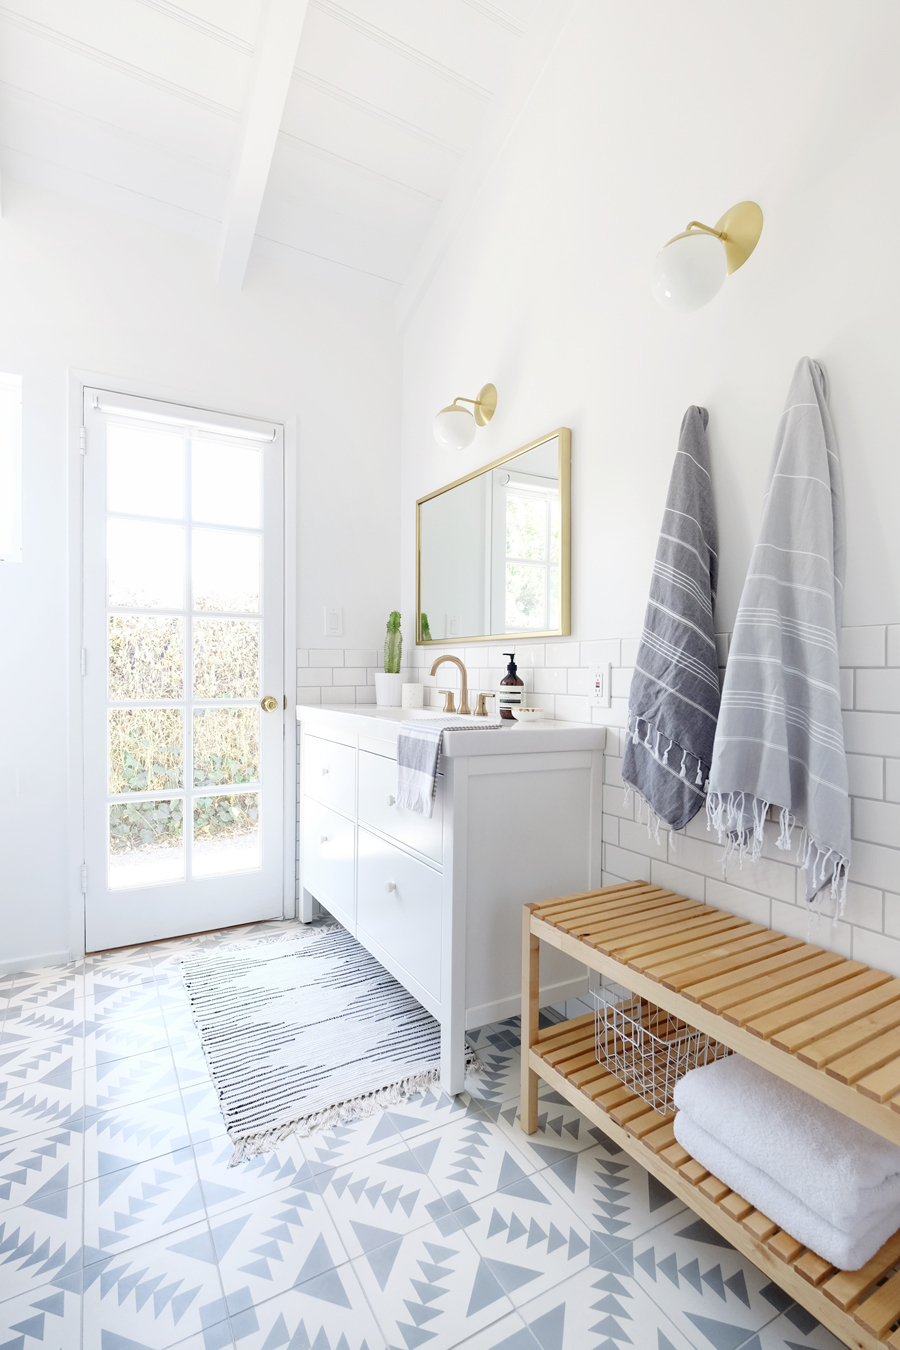 Turkish towels - simple ways to style a bathroom - That Homebird Life Blog